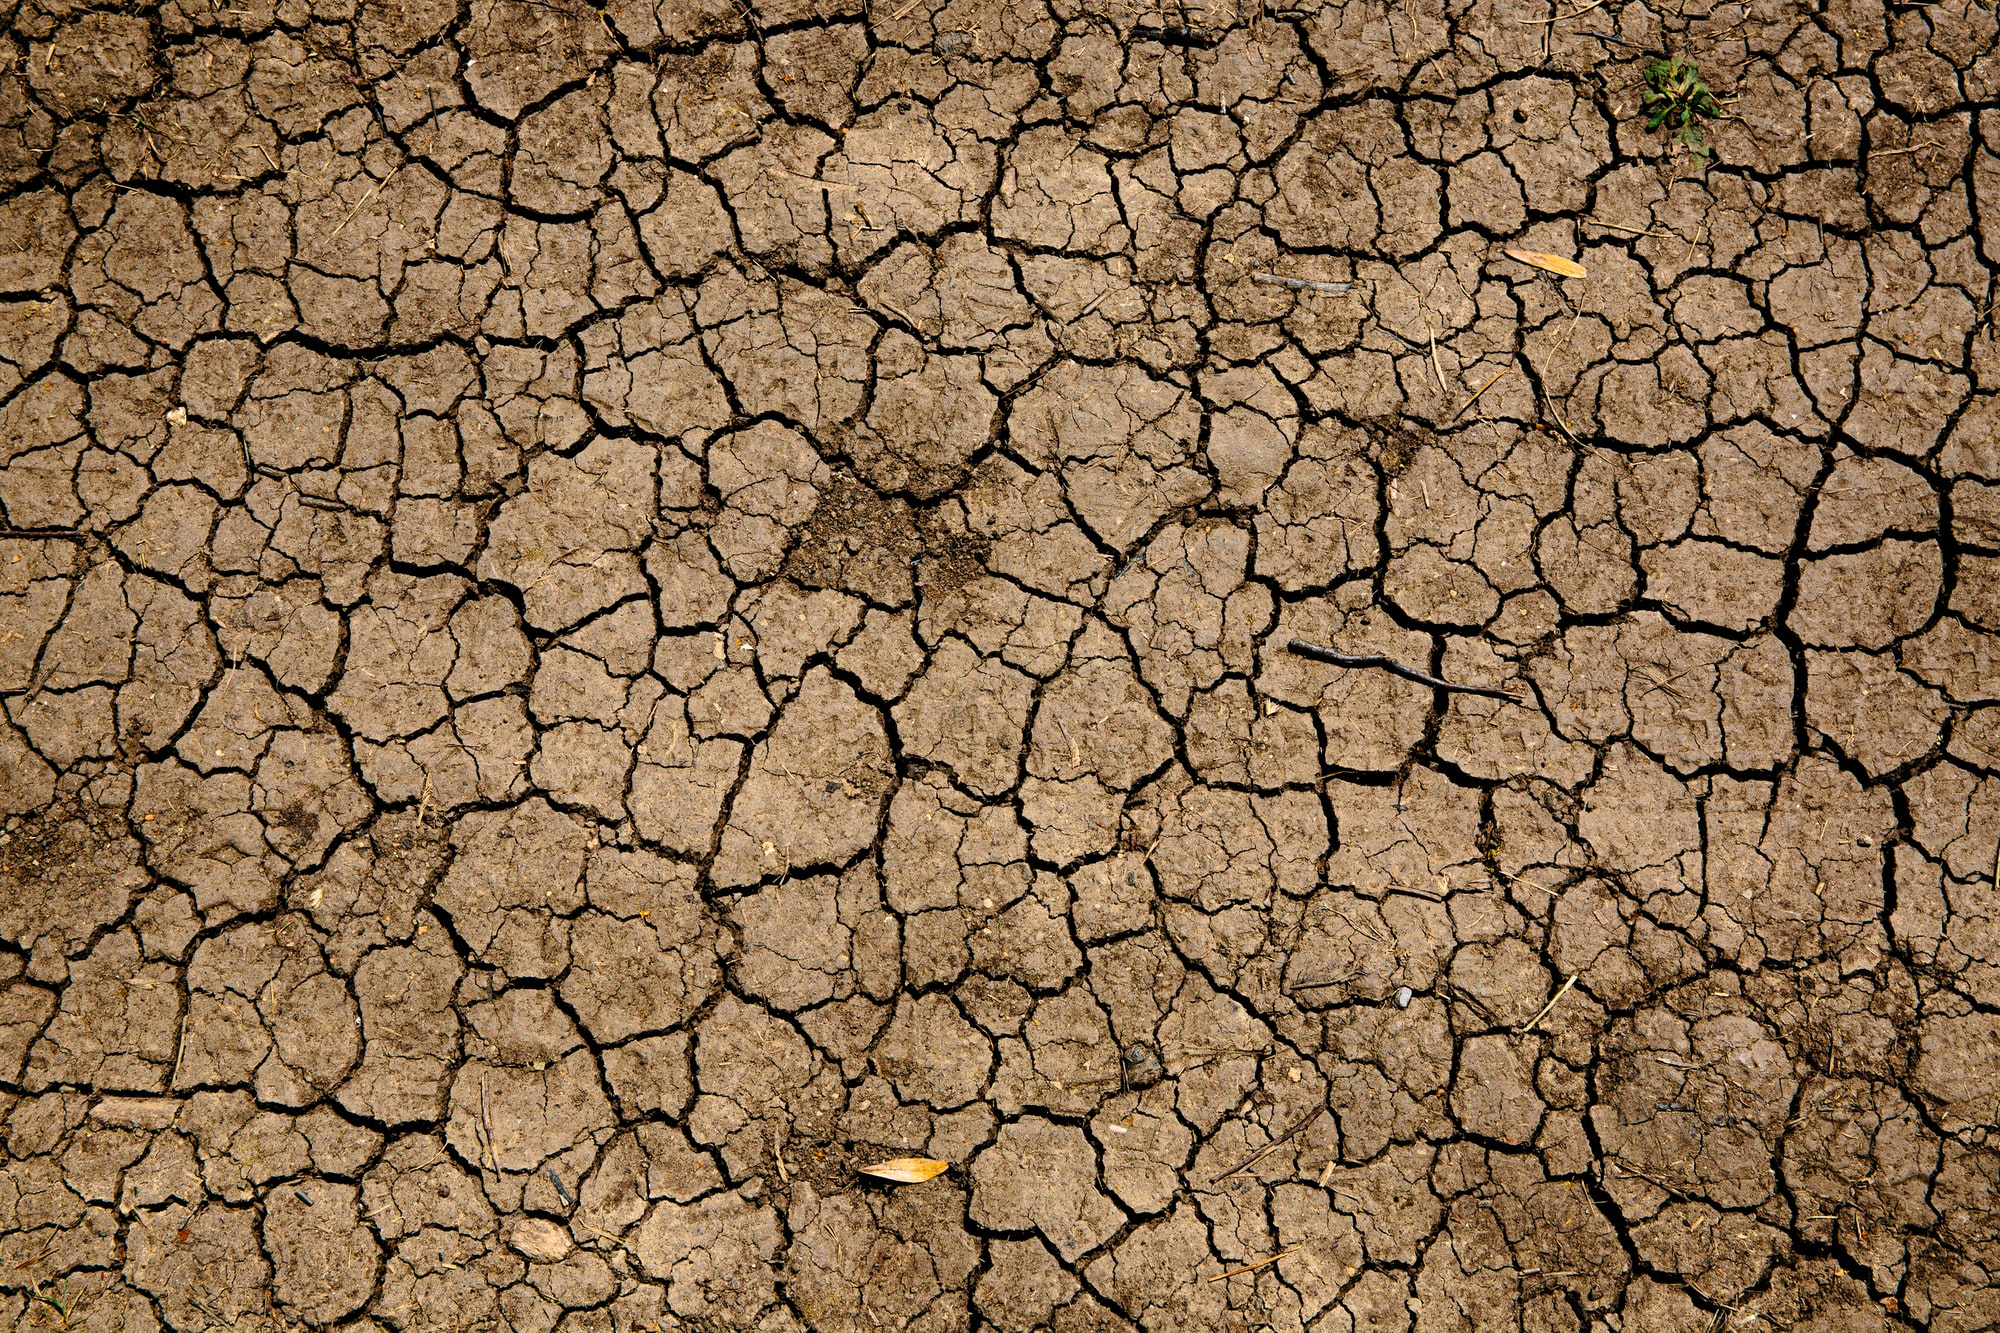 Central Asia's Failure to Avert the Impending Water Crisis